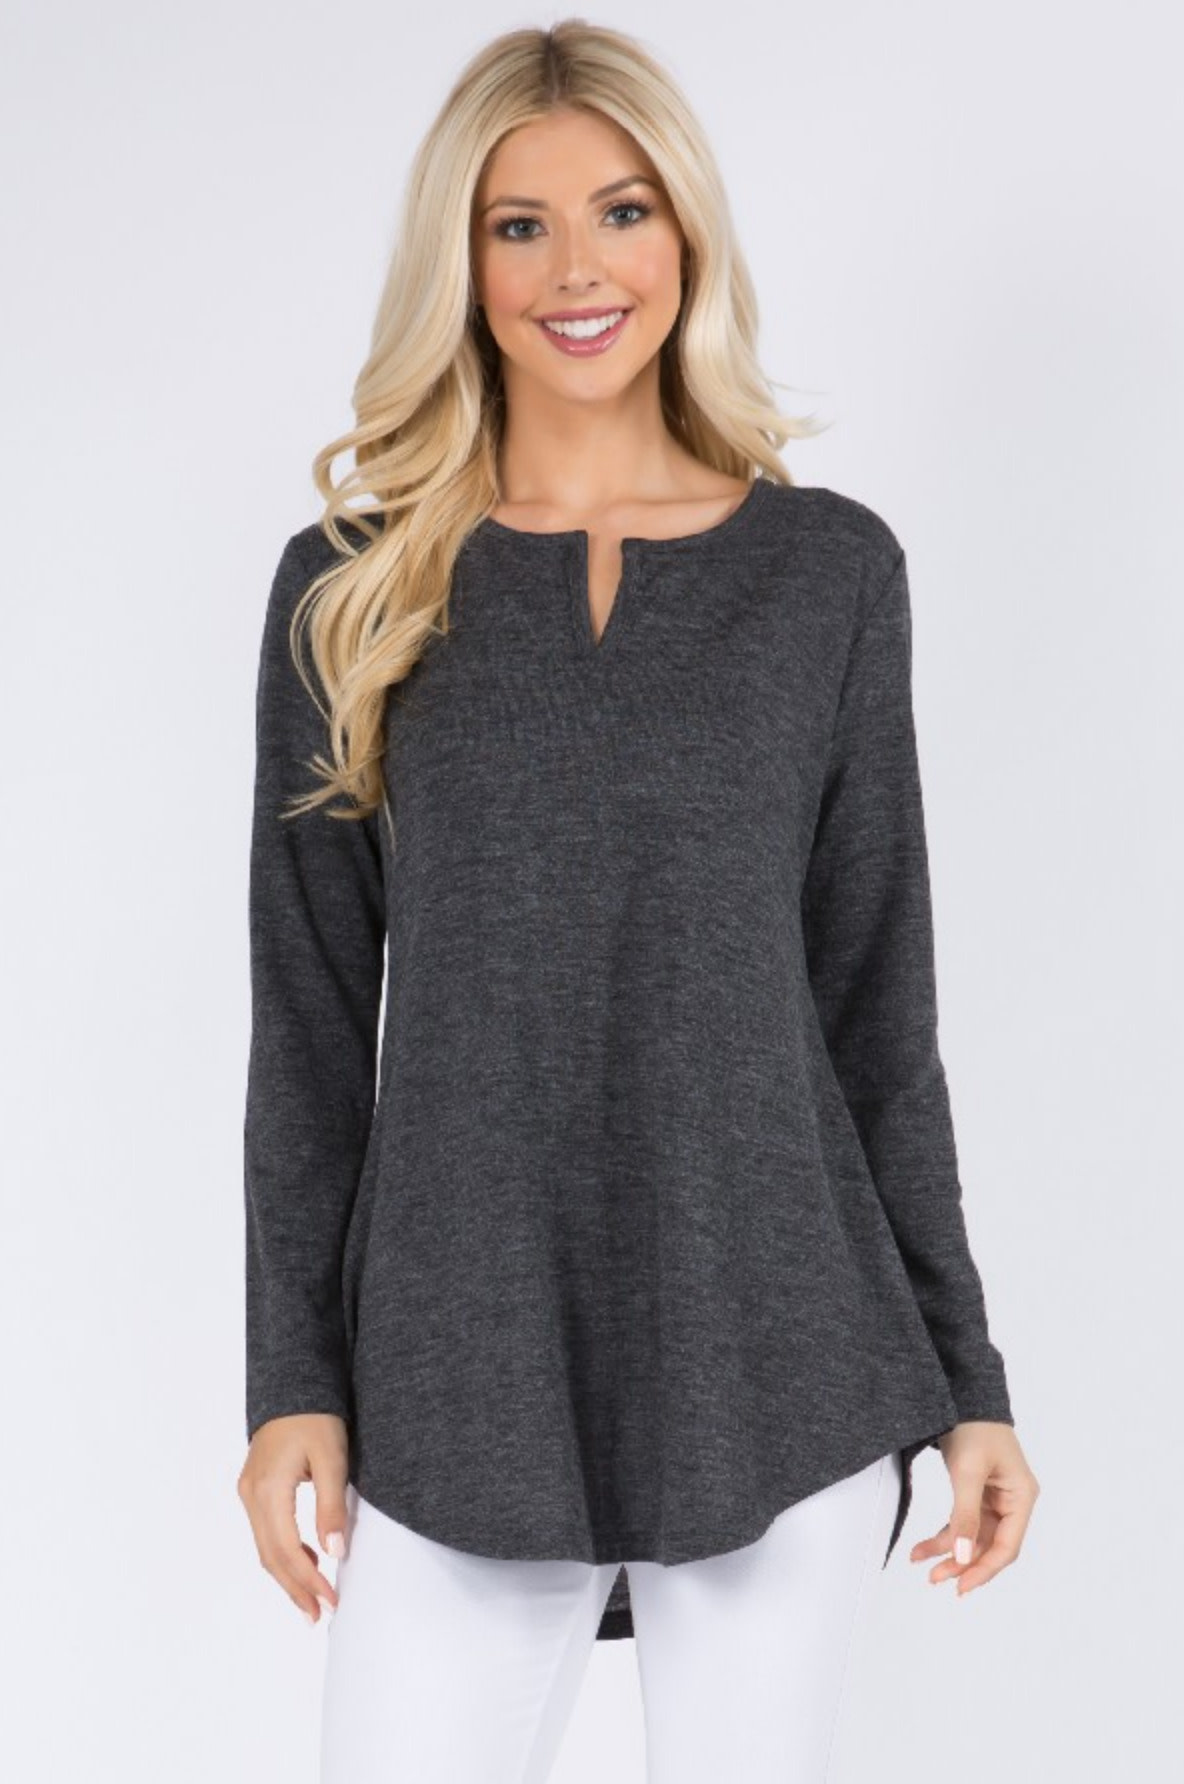 Can't go wrong tunic